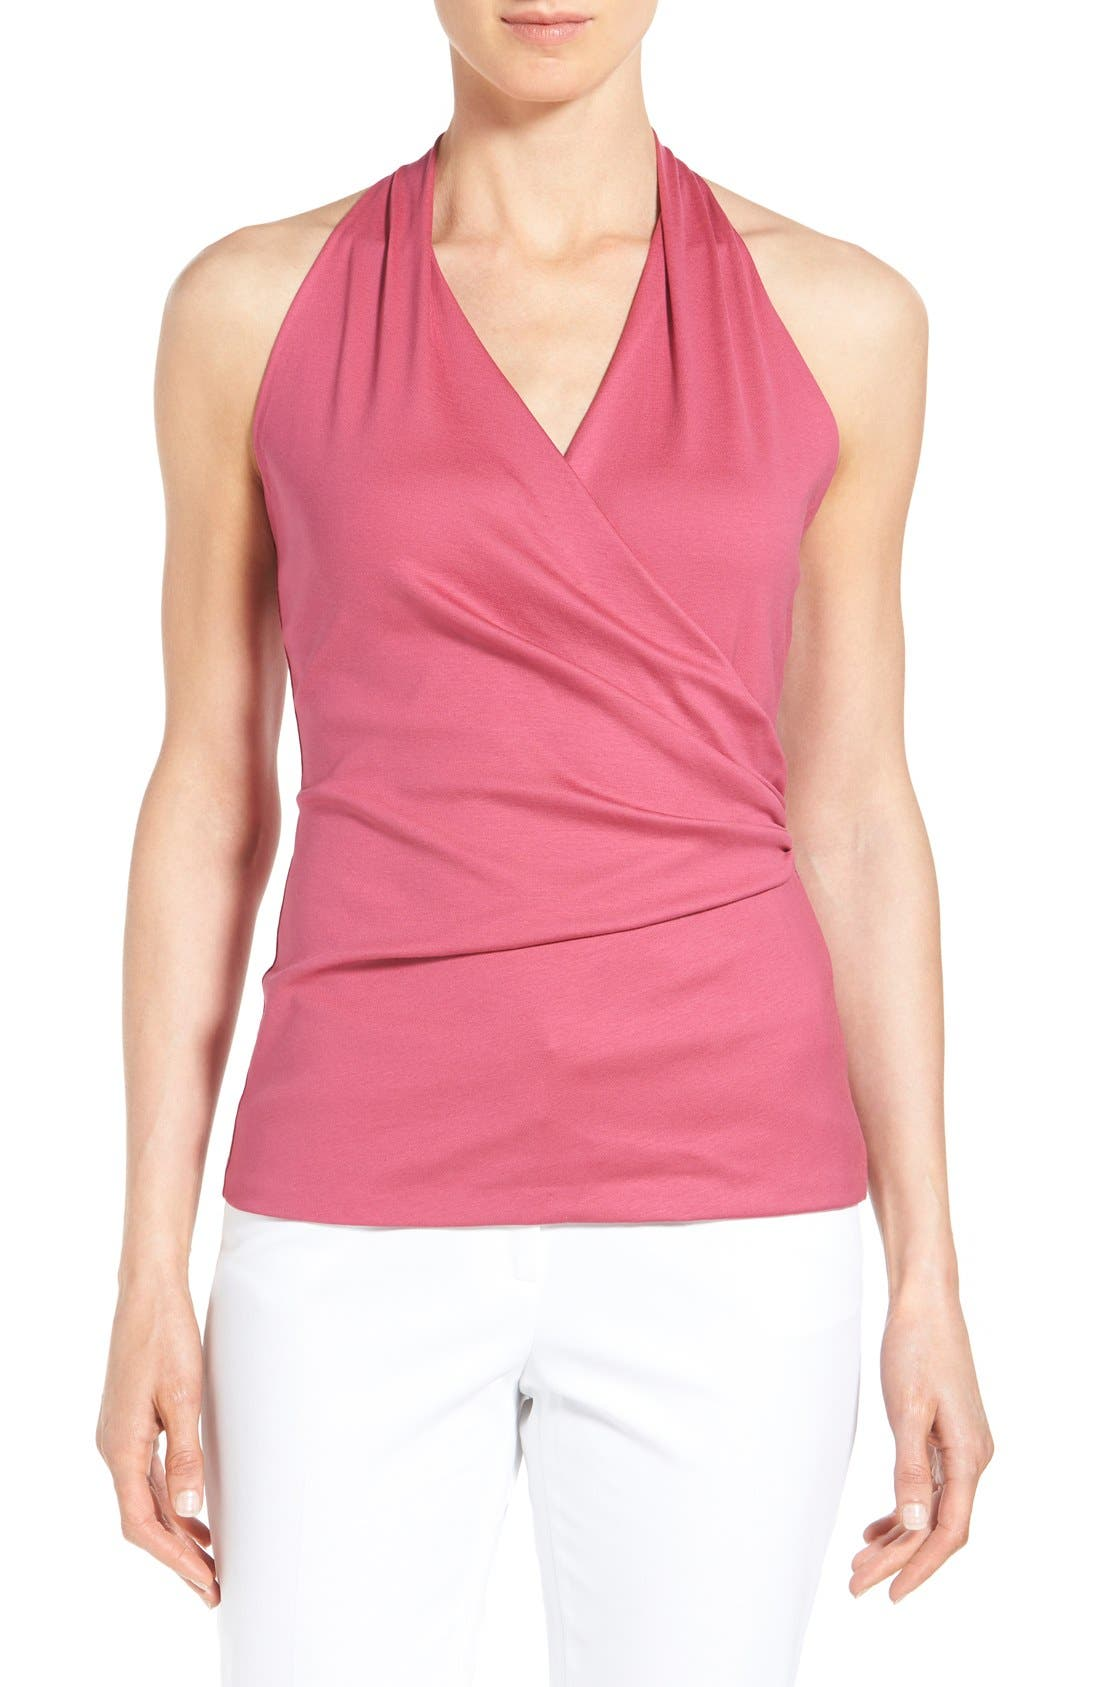 Alternate Image 1 Selected - Lafayette 148 New York Shirred Faux Wrap Top (Regular & Petite)